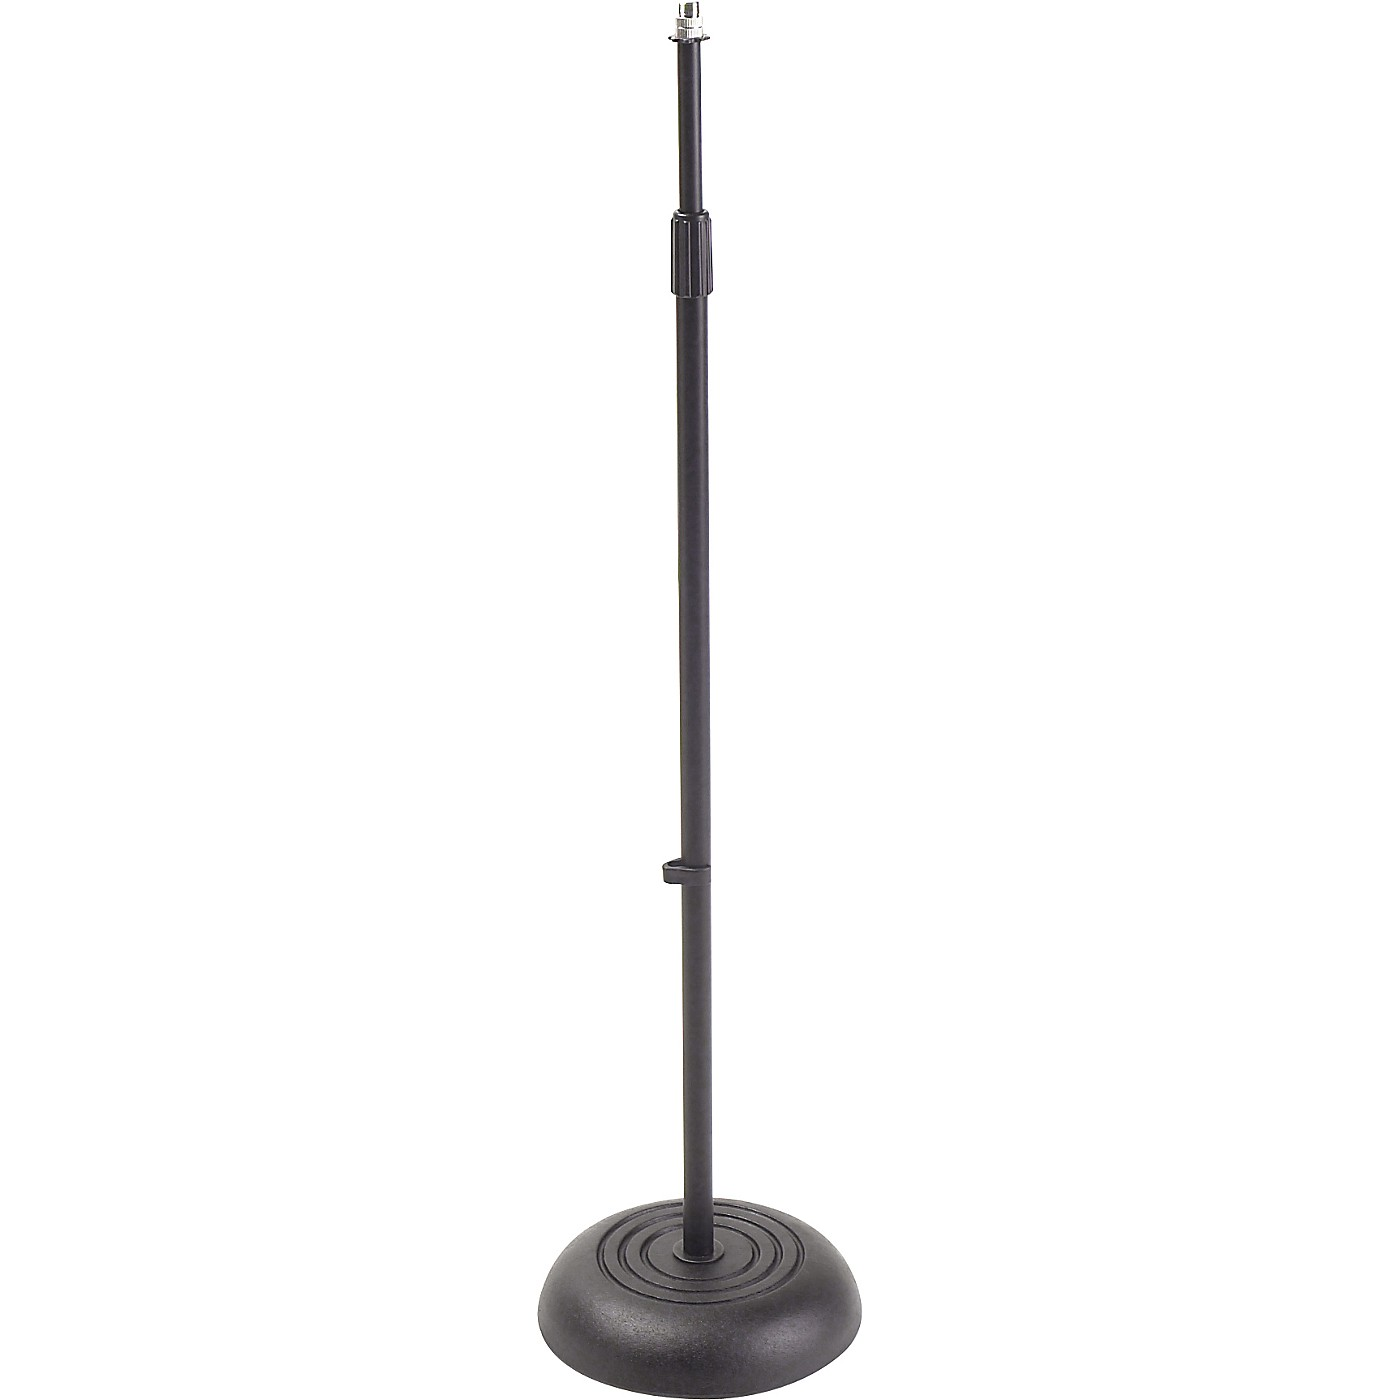 Proline MS235 Round Base Microphone Stand thumbnail